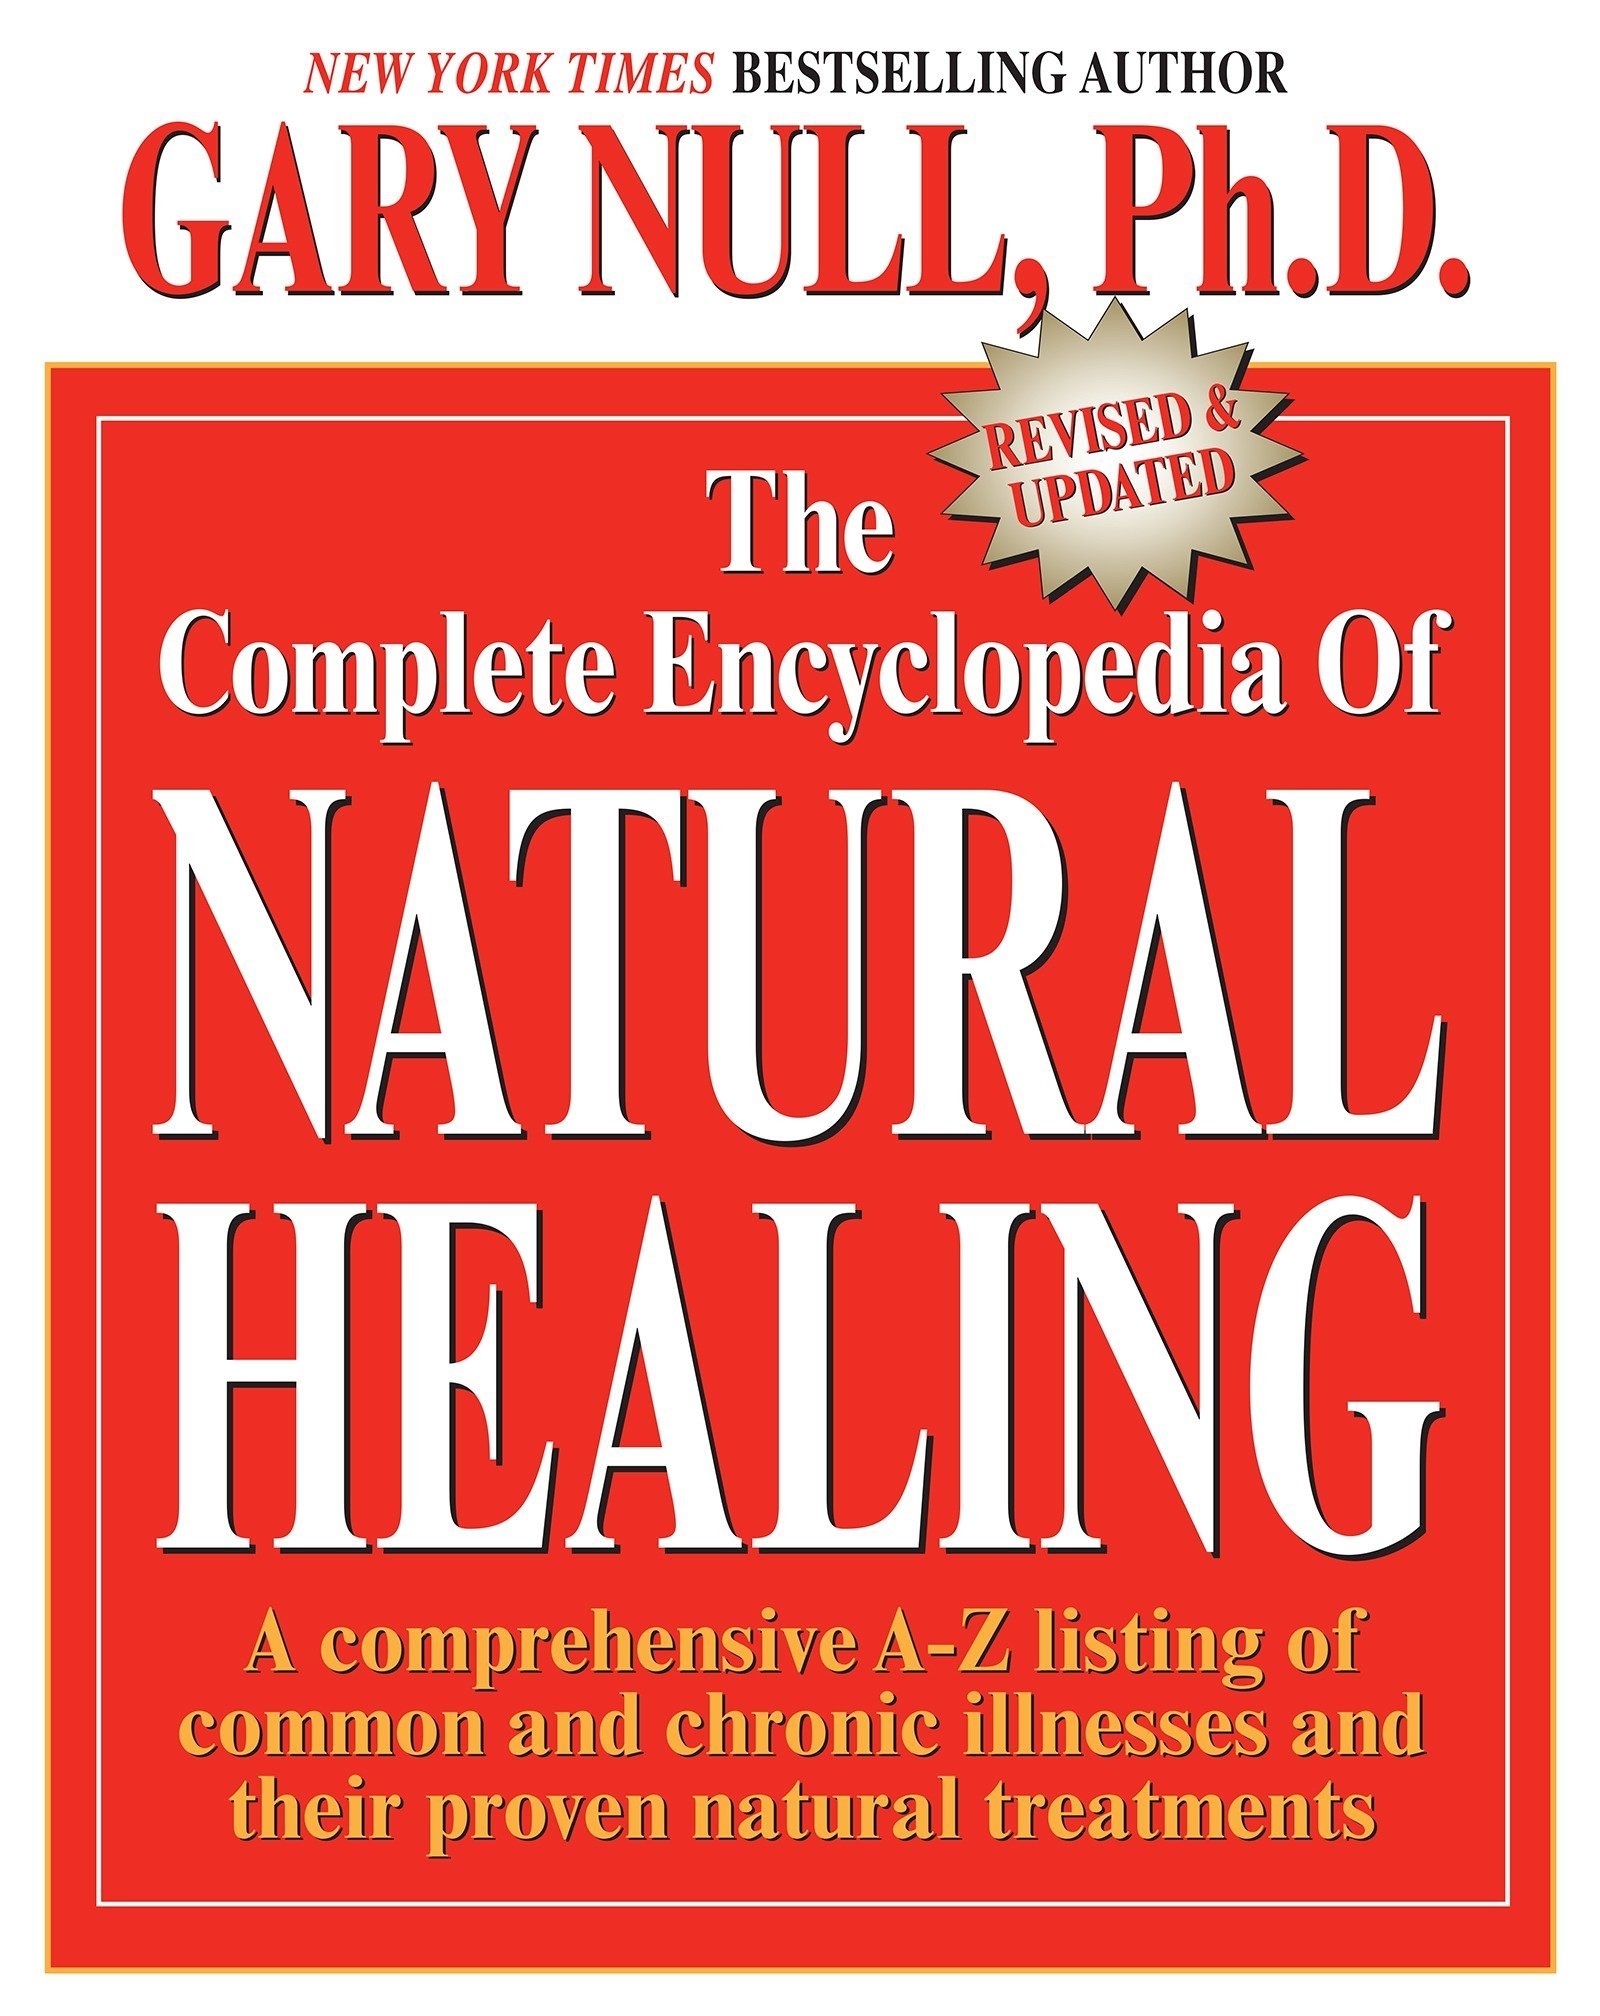 The Complete Encyclopedia of Natural Healing: A comprehensive A-Z listing of common and chronic illnesses and their proven natural treatments by Kensington